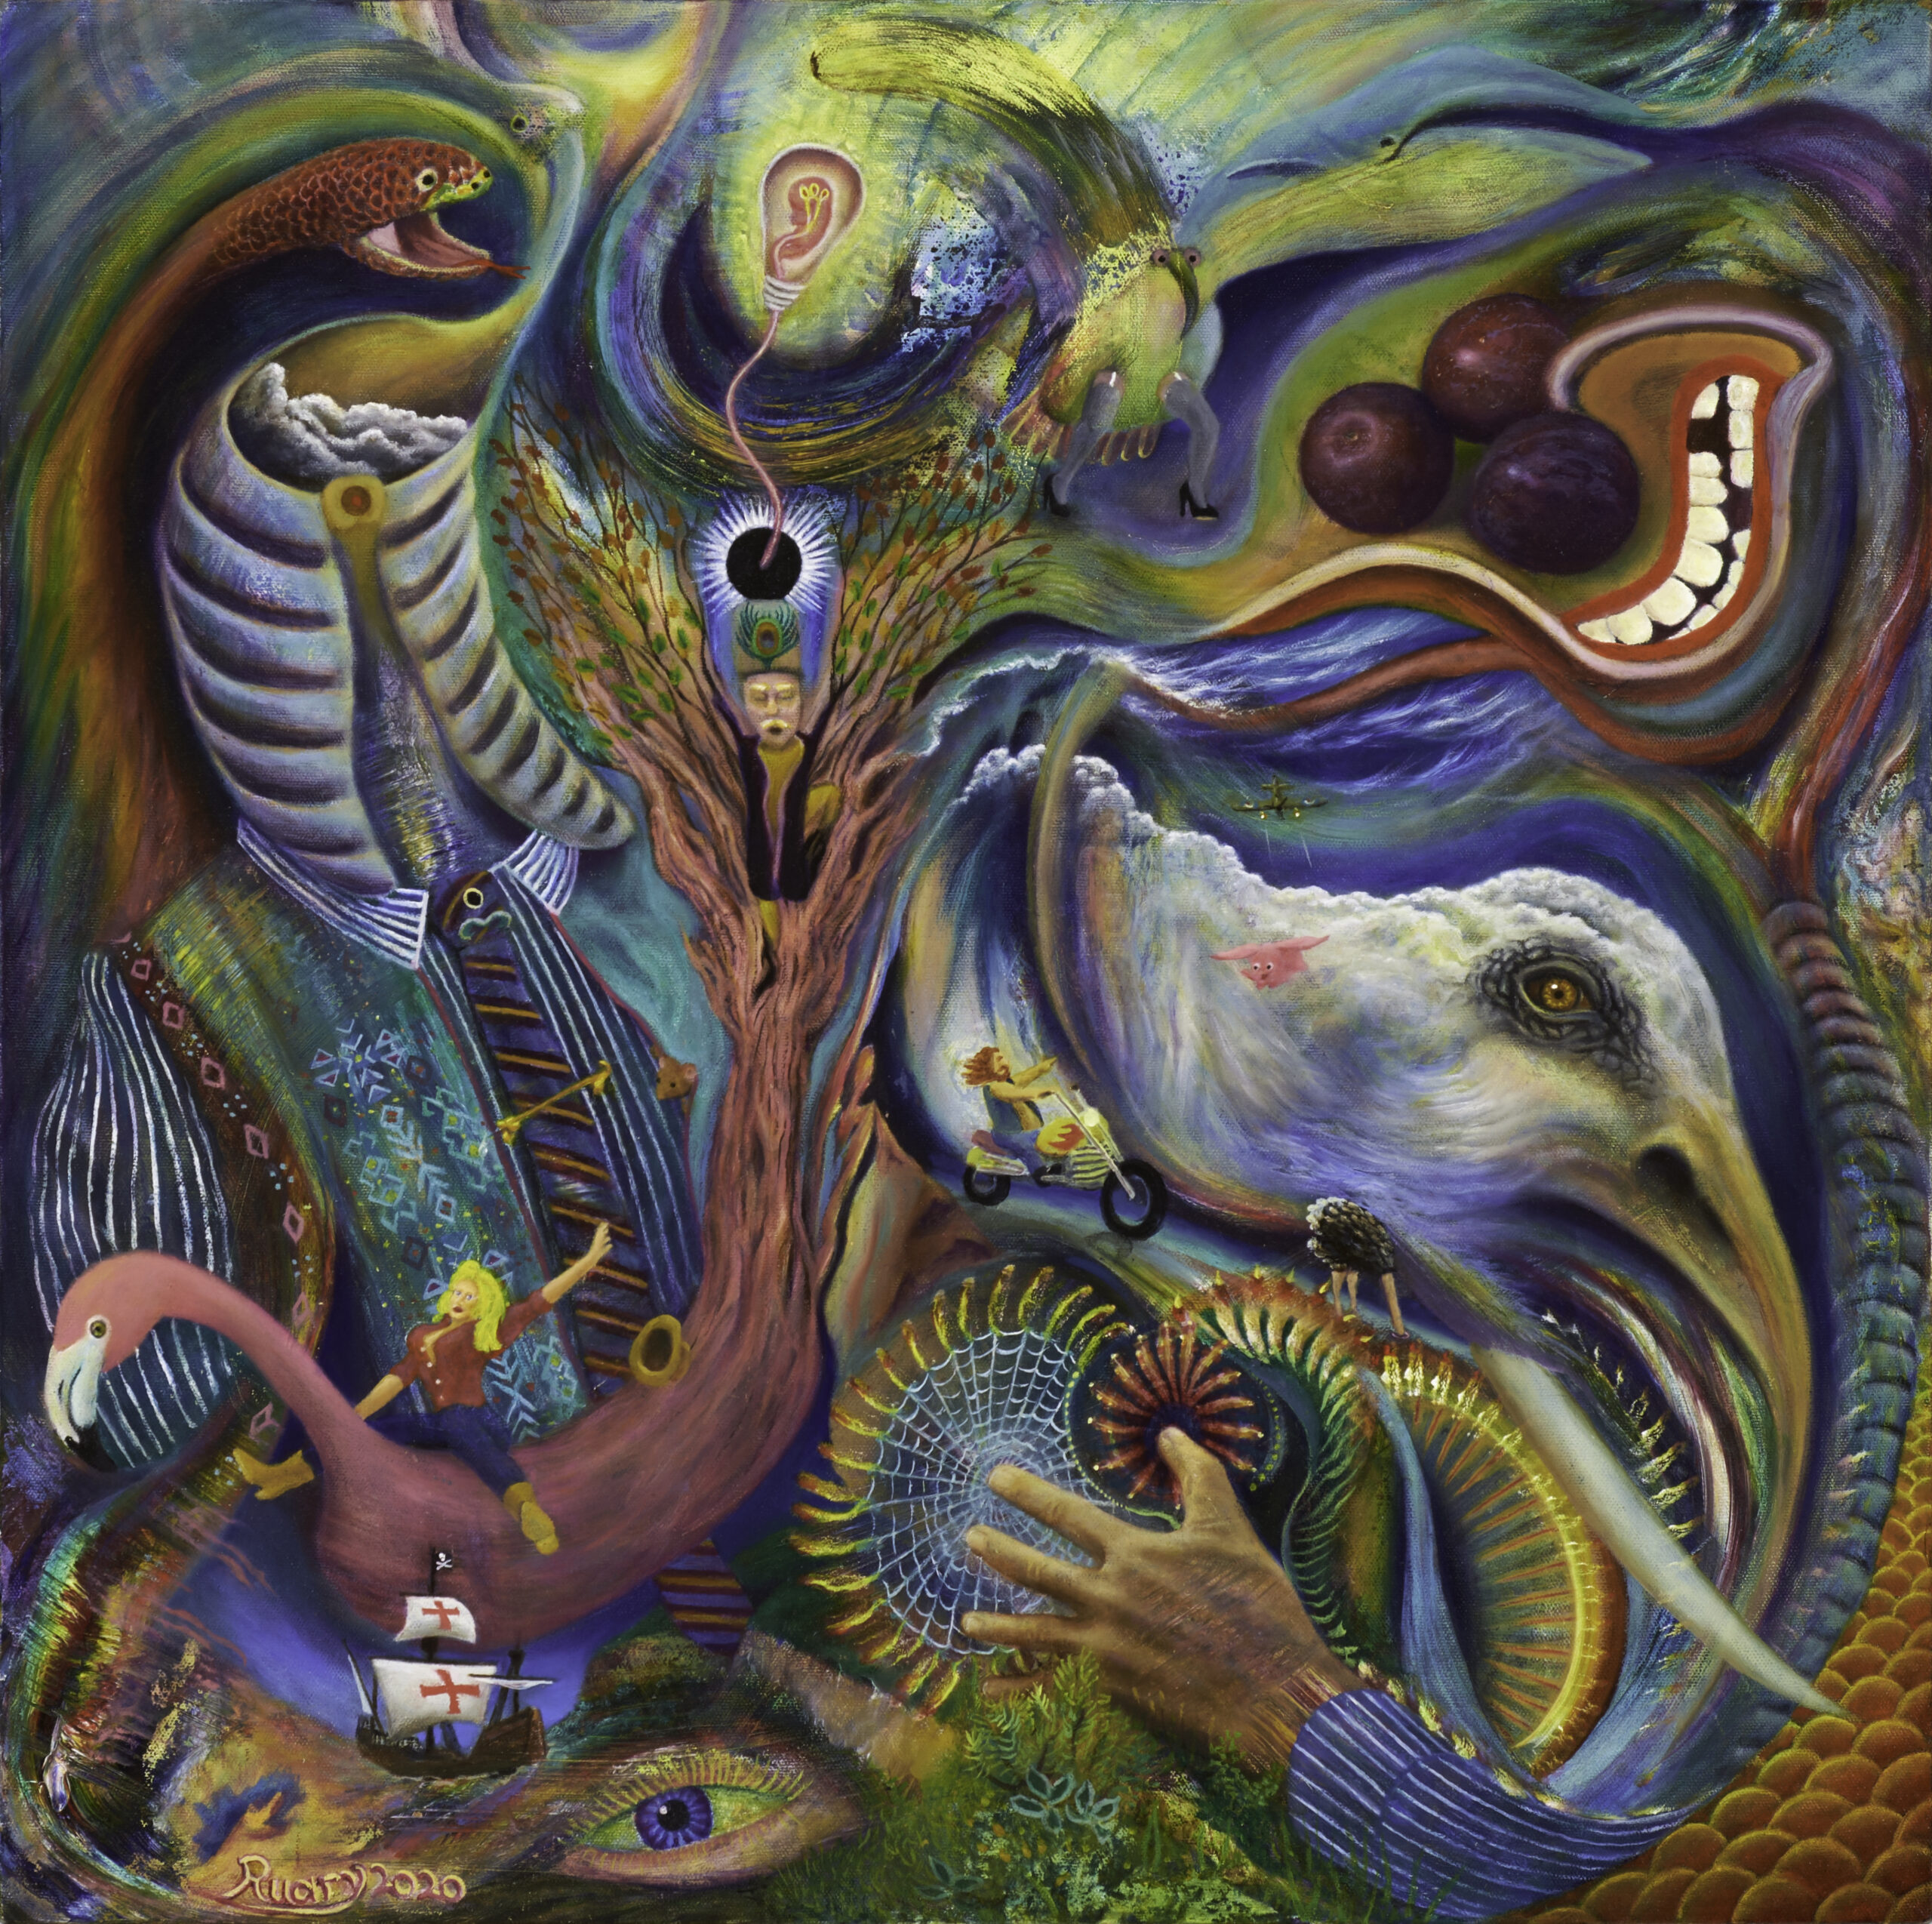 Kundamingo (2020), Oil on canvas, 24 x 24